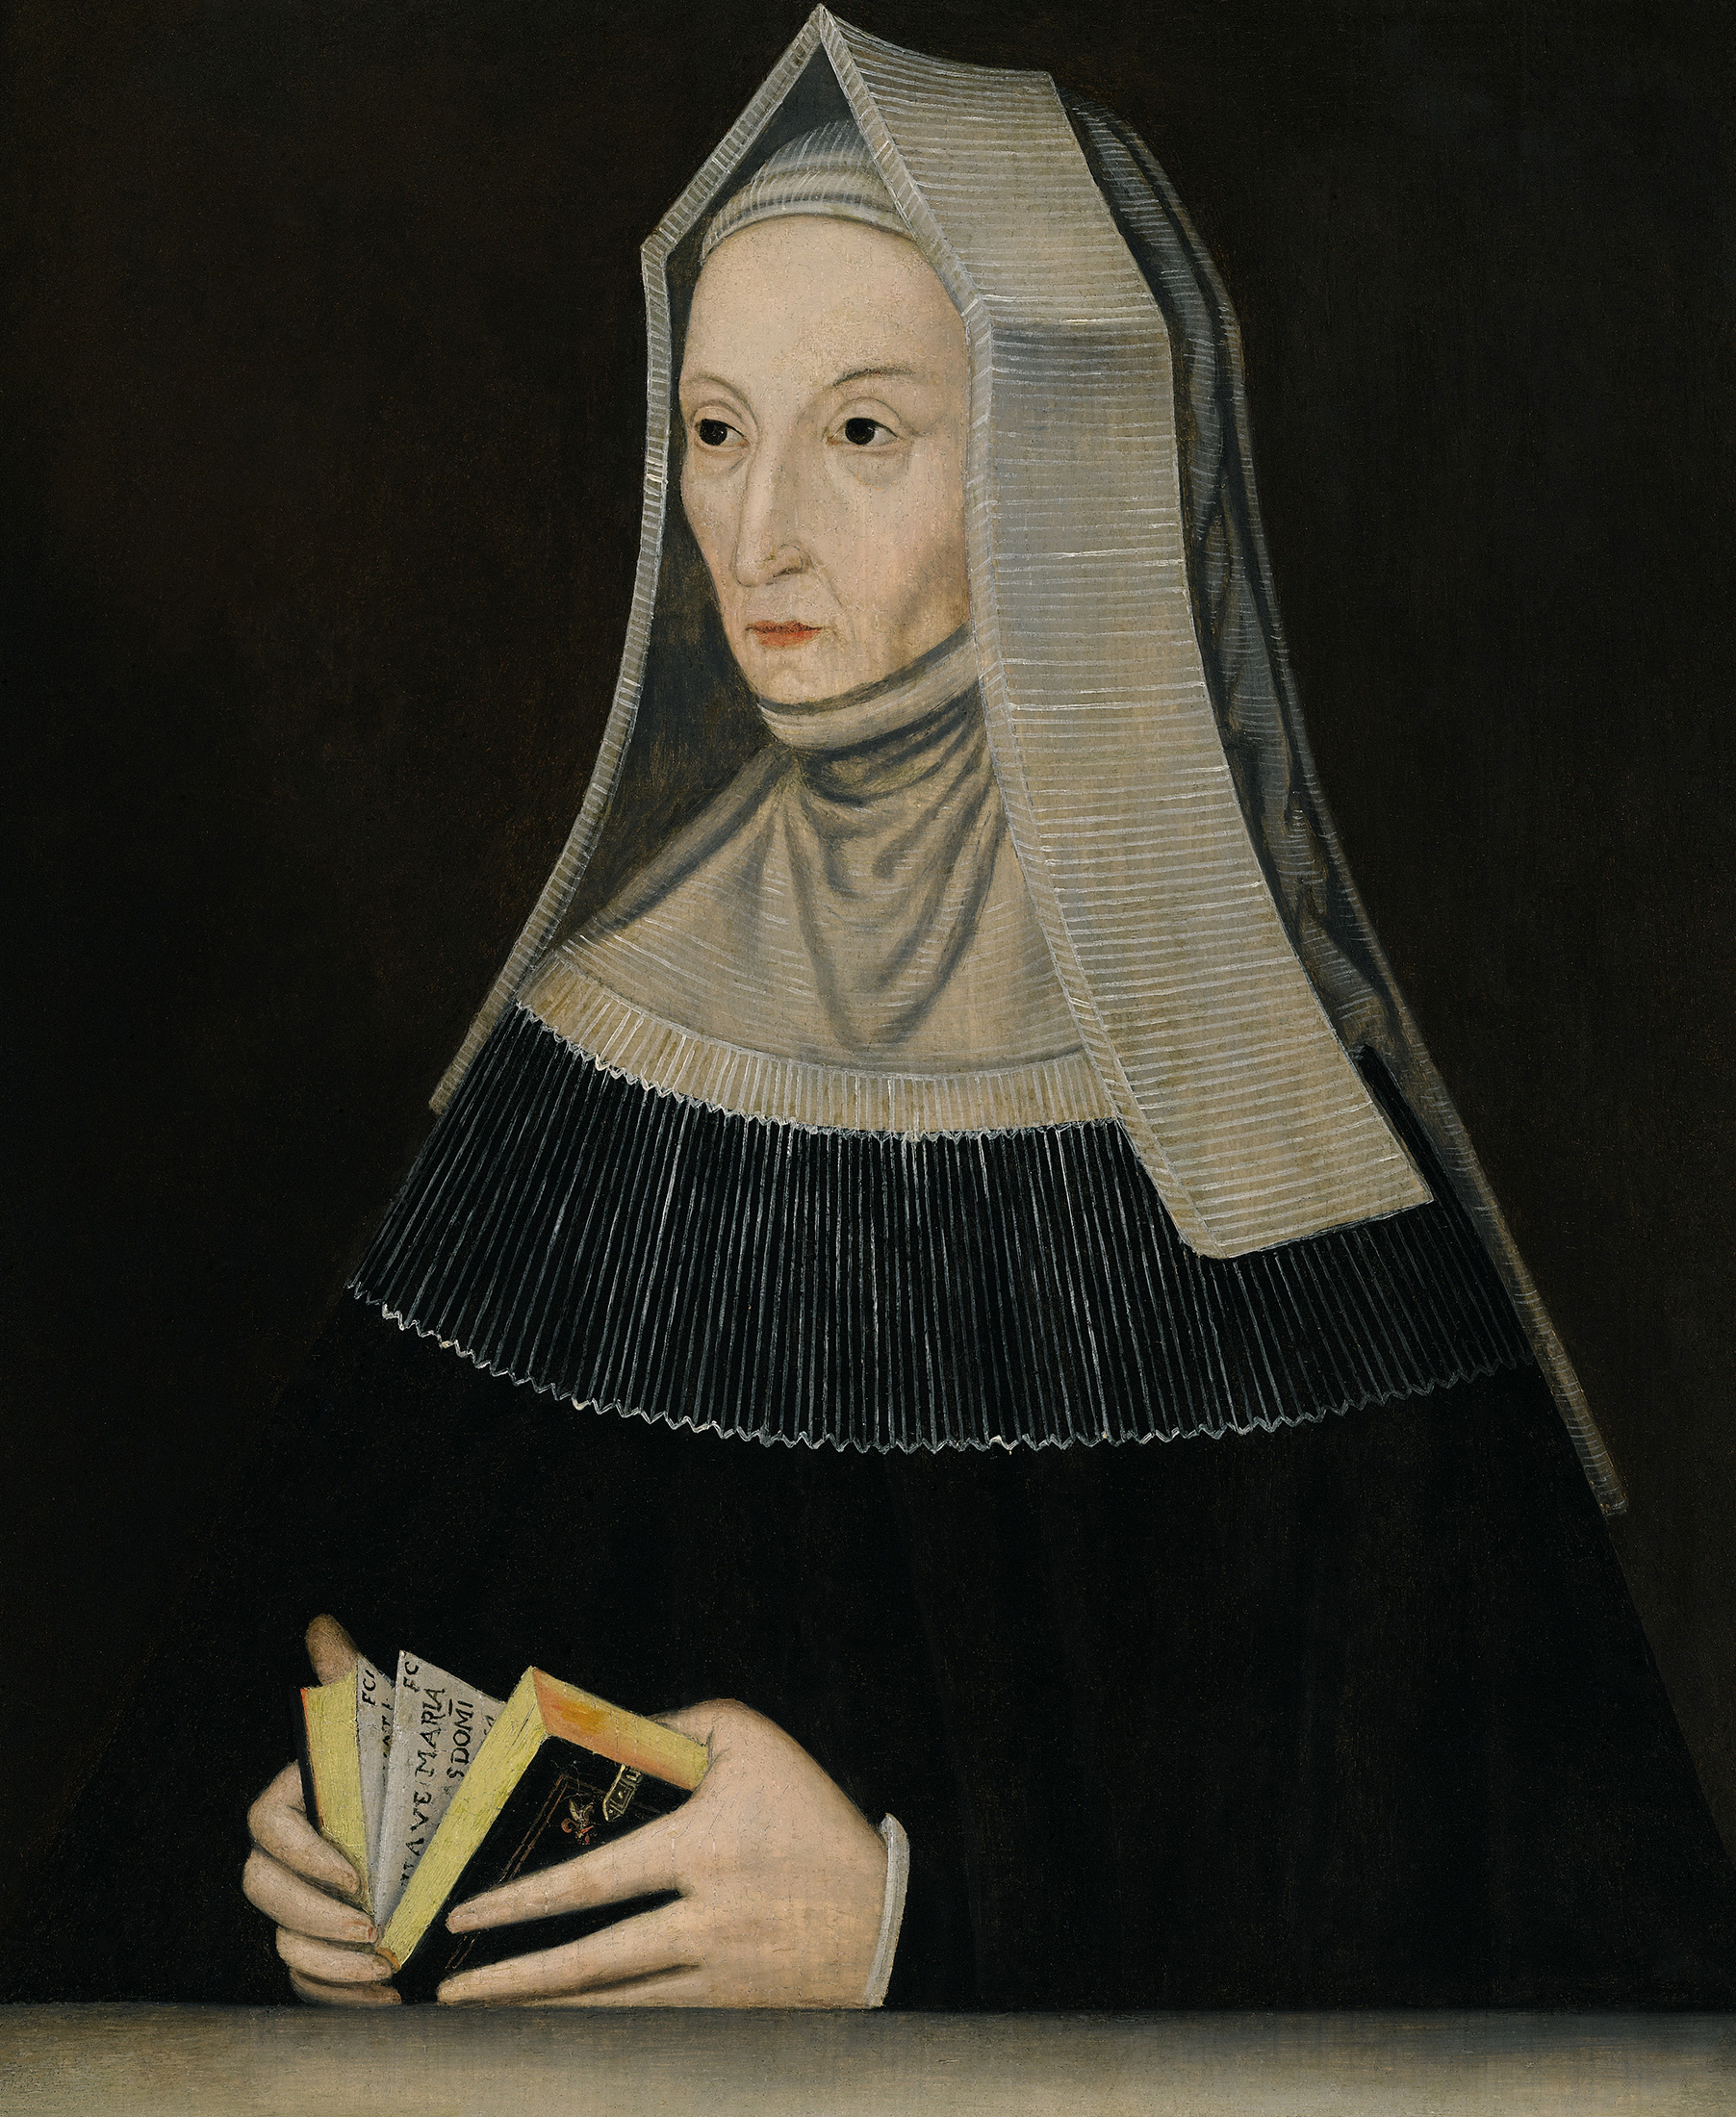 Portrait of Margaret Beaufort (1441/1443-1509), Countess of Richmond and Derby (1485), the mother of King Henry VII (1485-1509) | Portraits of Kings